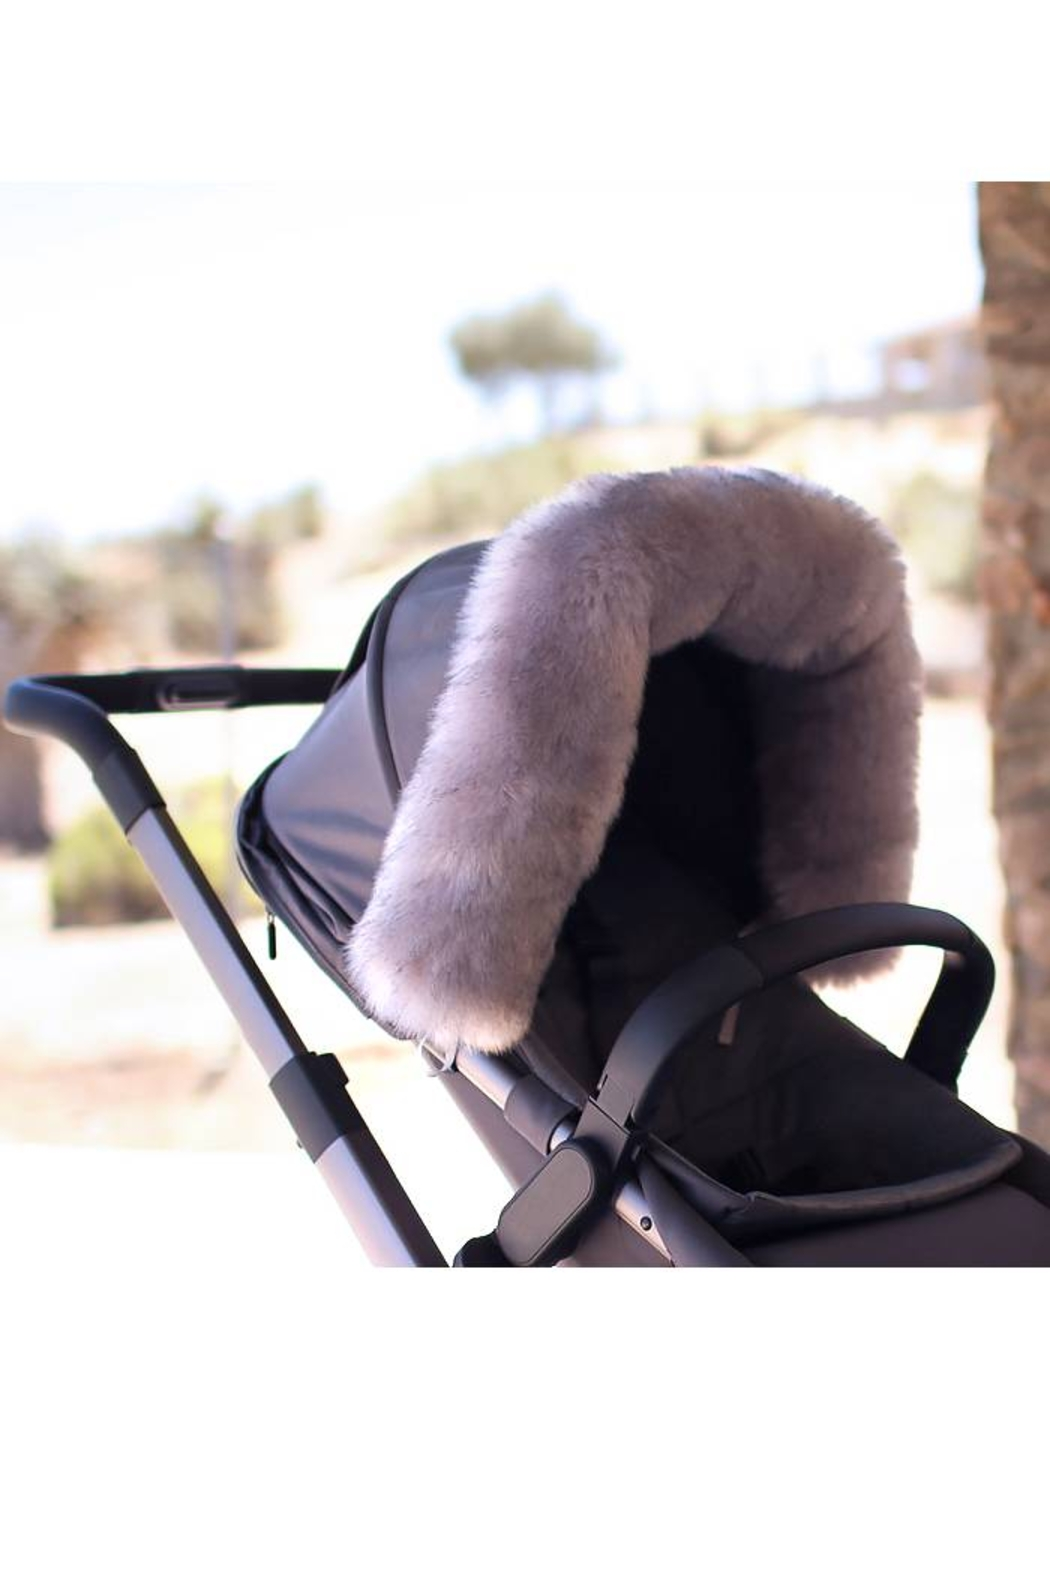 7AM Enfant 7 AM Enfant Faux Fur Marquee Tundra Canopy For Baby Carrier Or Stroller - Back Cropped Image